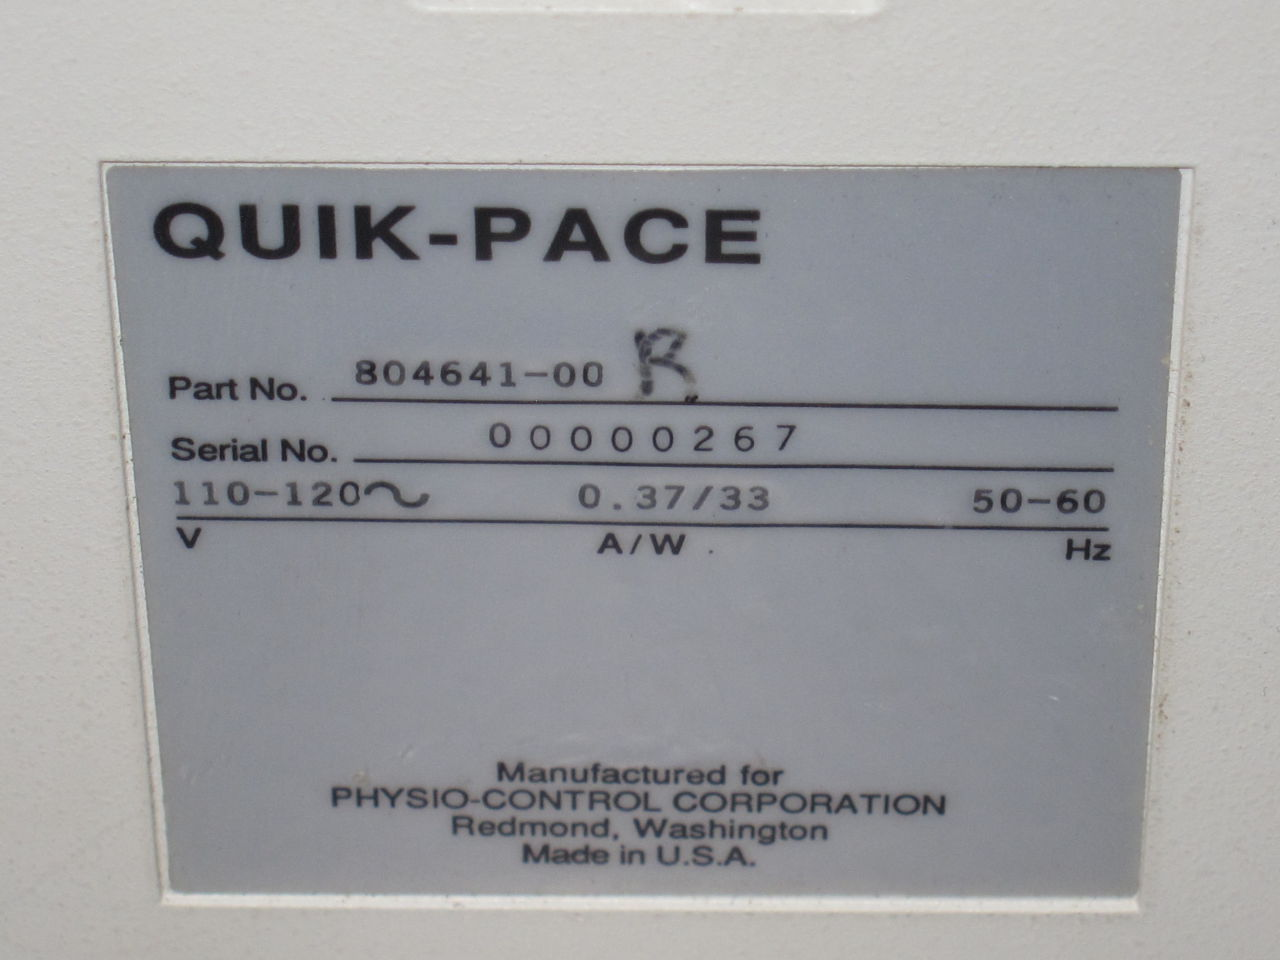 PHYSIO-CONTROL CORPORATION Quik-Pace Pacemaker